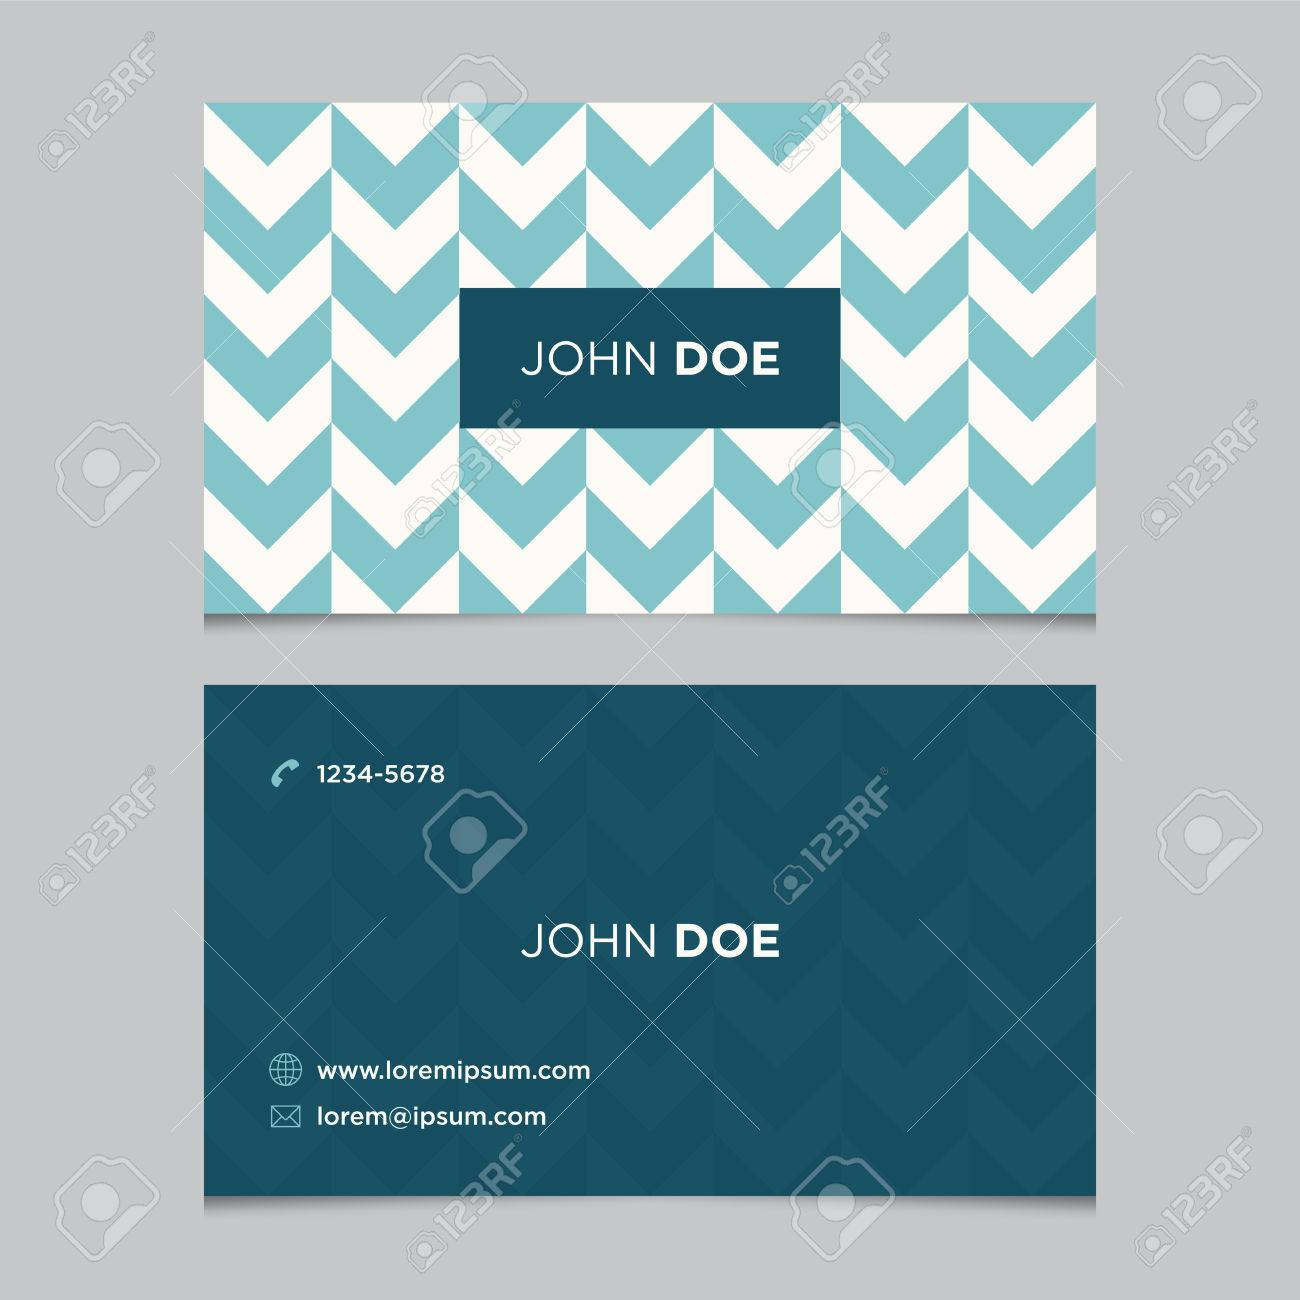 Business Card Template Background Pattern Vector Design Editable - Business card design templates